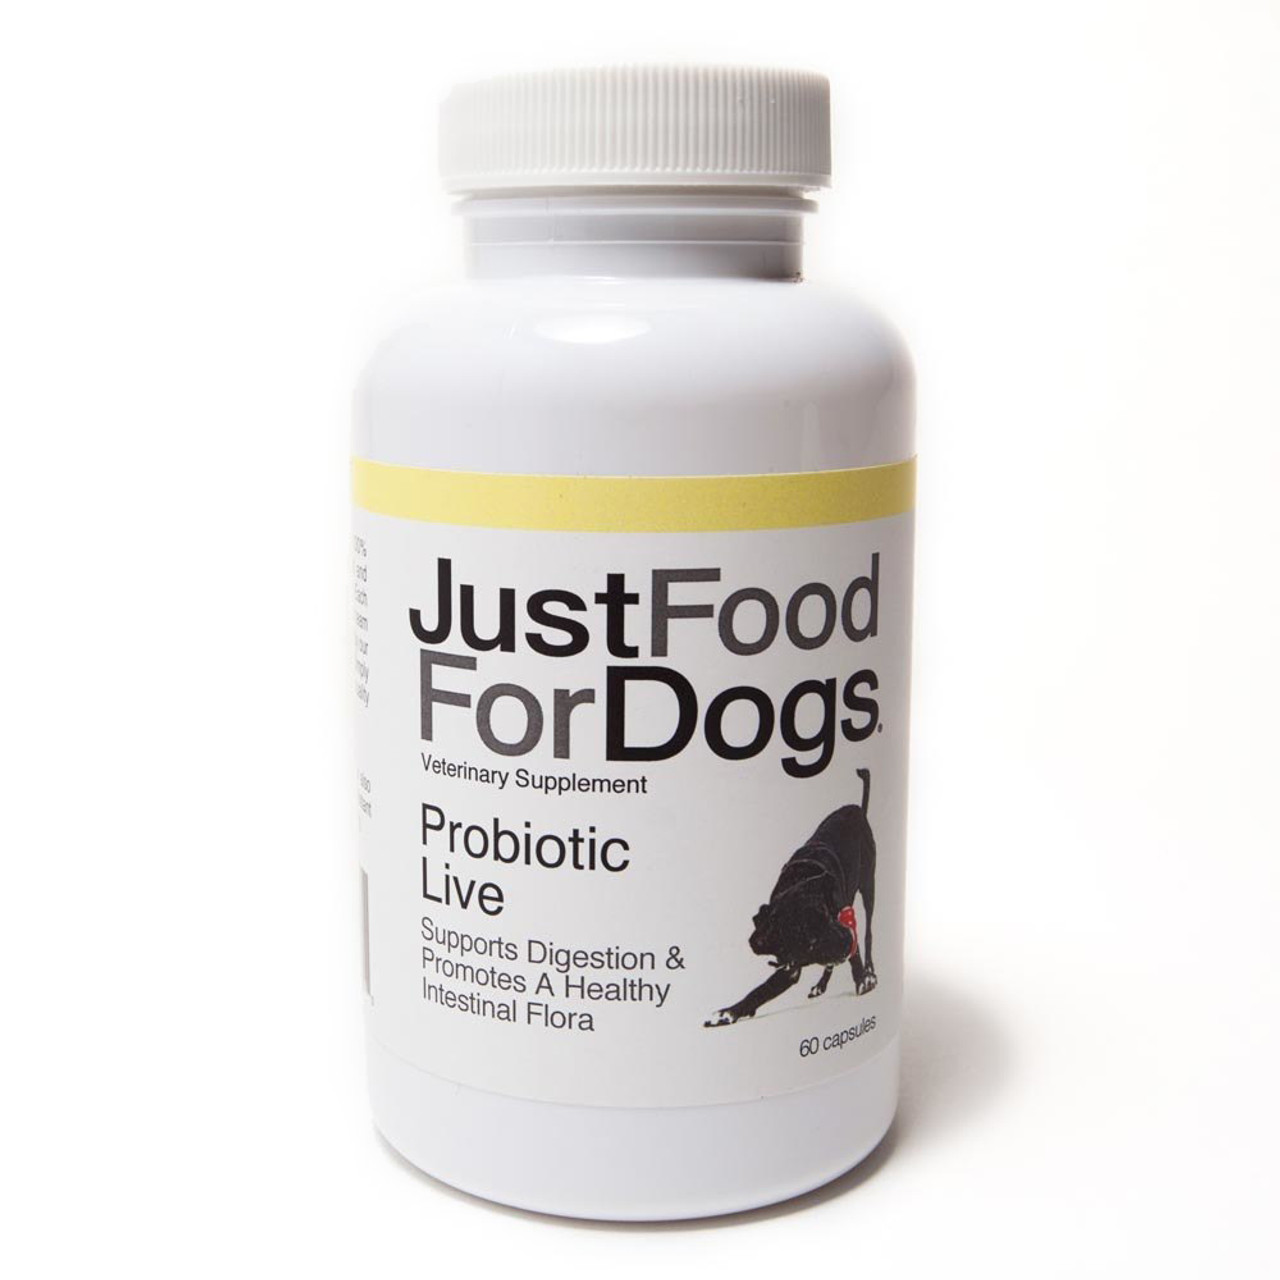 JustFoodForDogs Probiotic Live Supplement for Dogs